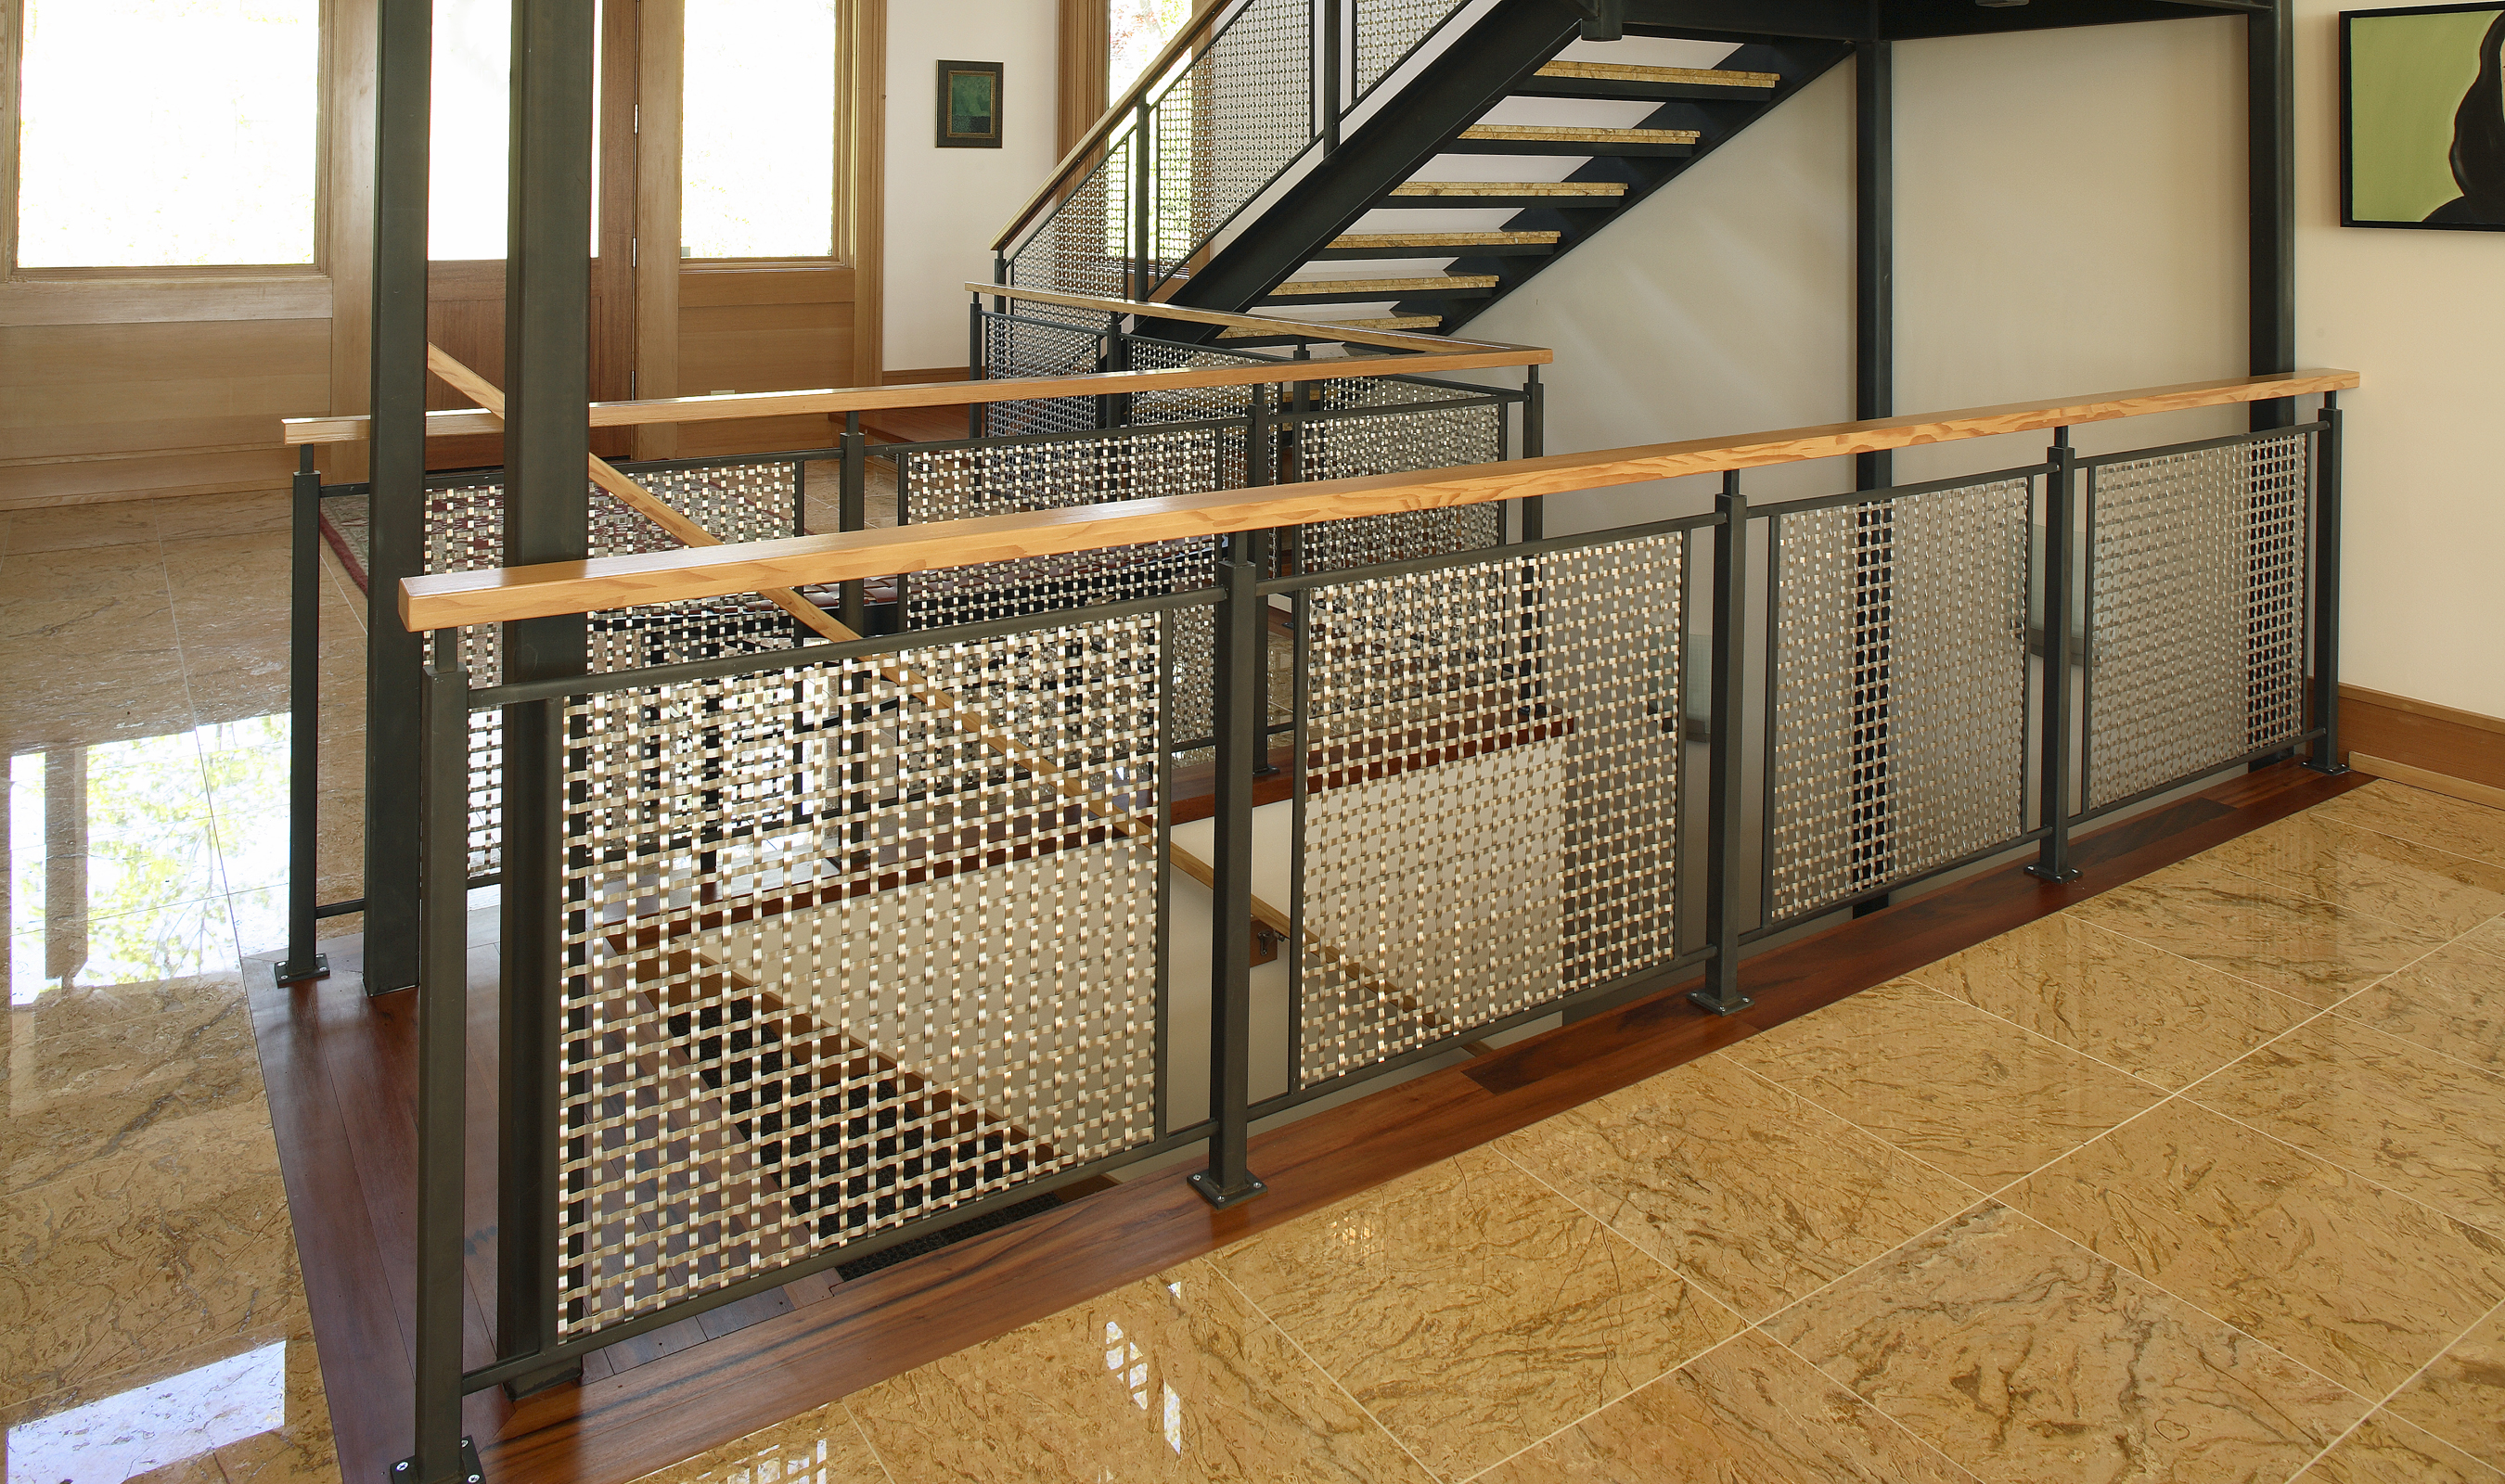 S-15 flat woven wire mesh captures and reflects light in this contemporary home.